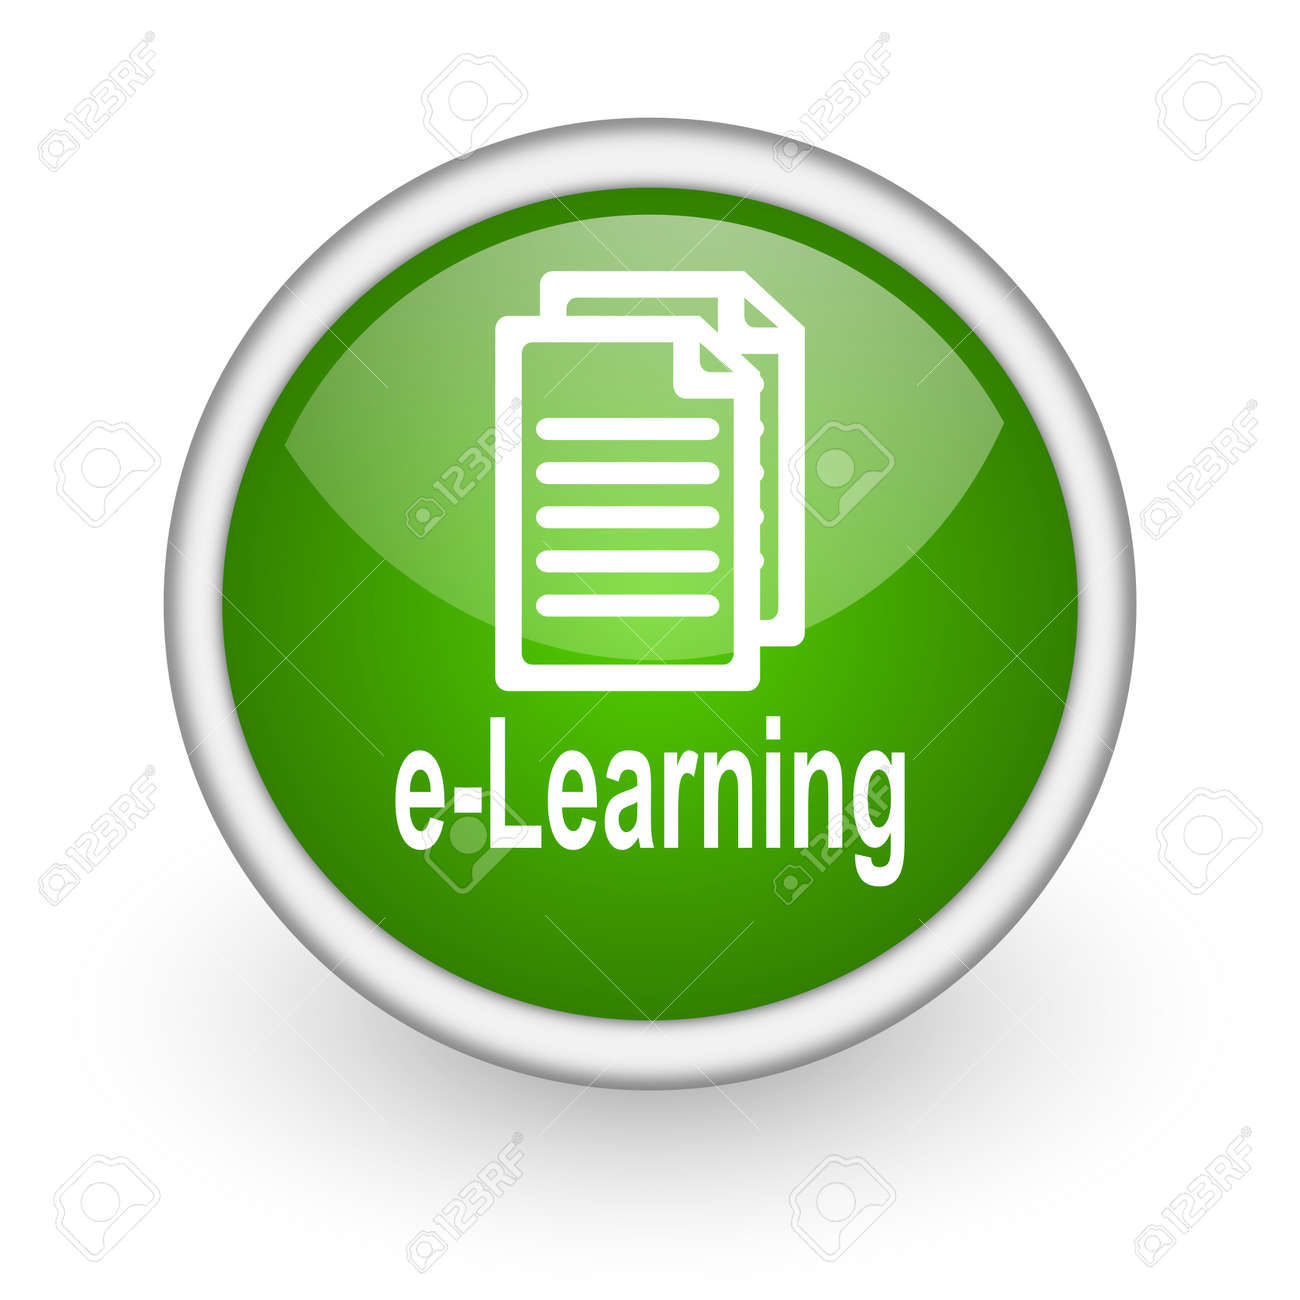 e-learning green circle glossy web icon on white background Stock Photo - 17648072